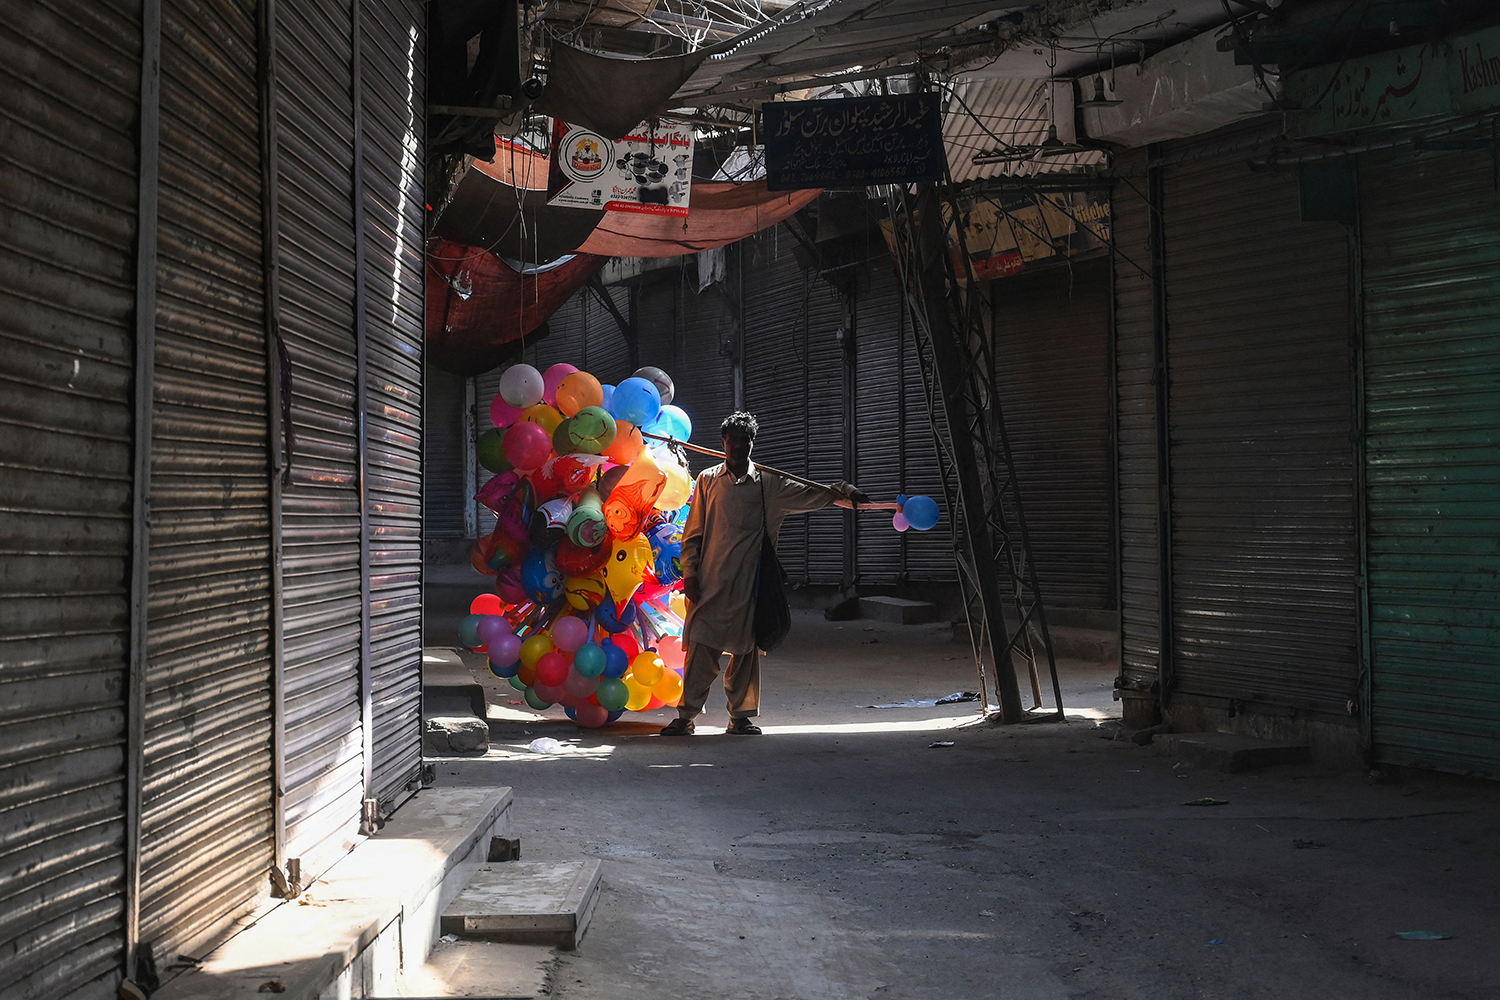 A balloon vendor walks past a shuttered market in Lahore, Pakistan, on April 11 as a lockdown was imposed to control the spread of the coronavirus. ARIF ALI/AFP via Getty Images